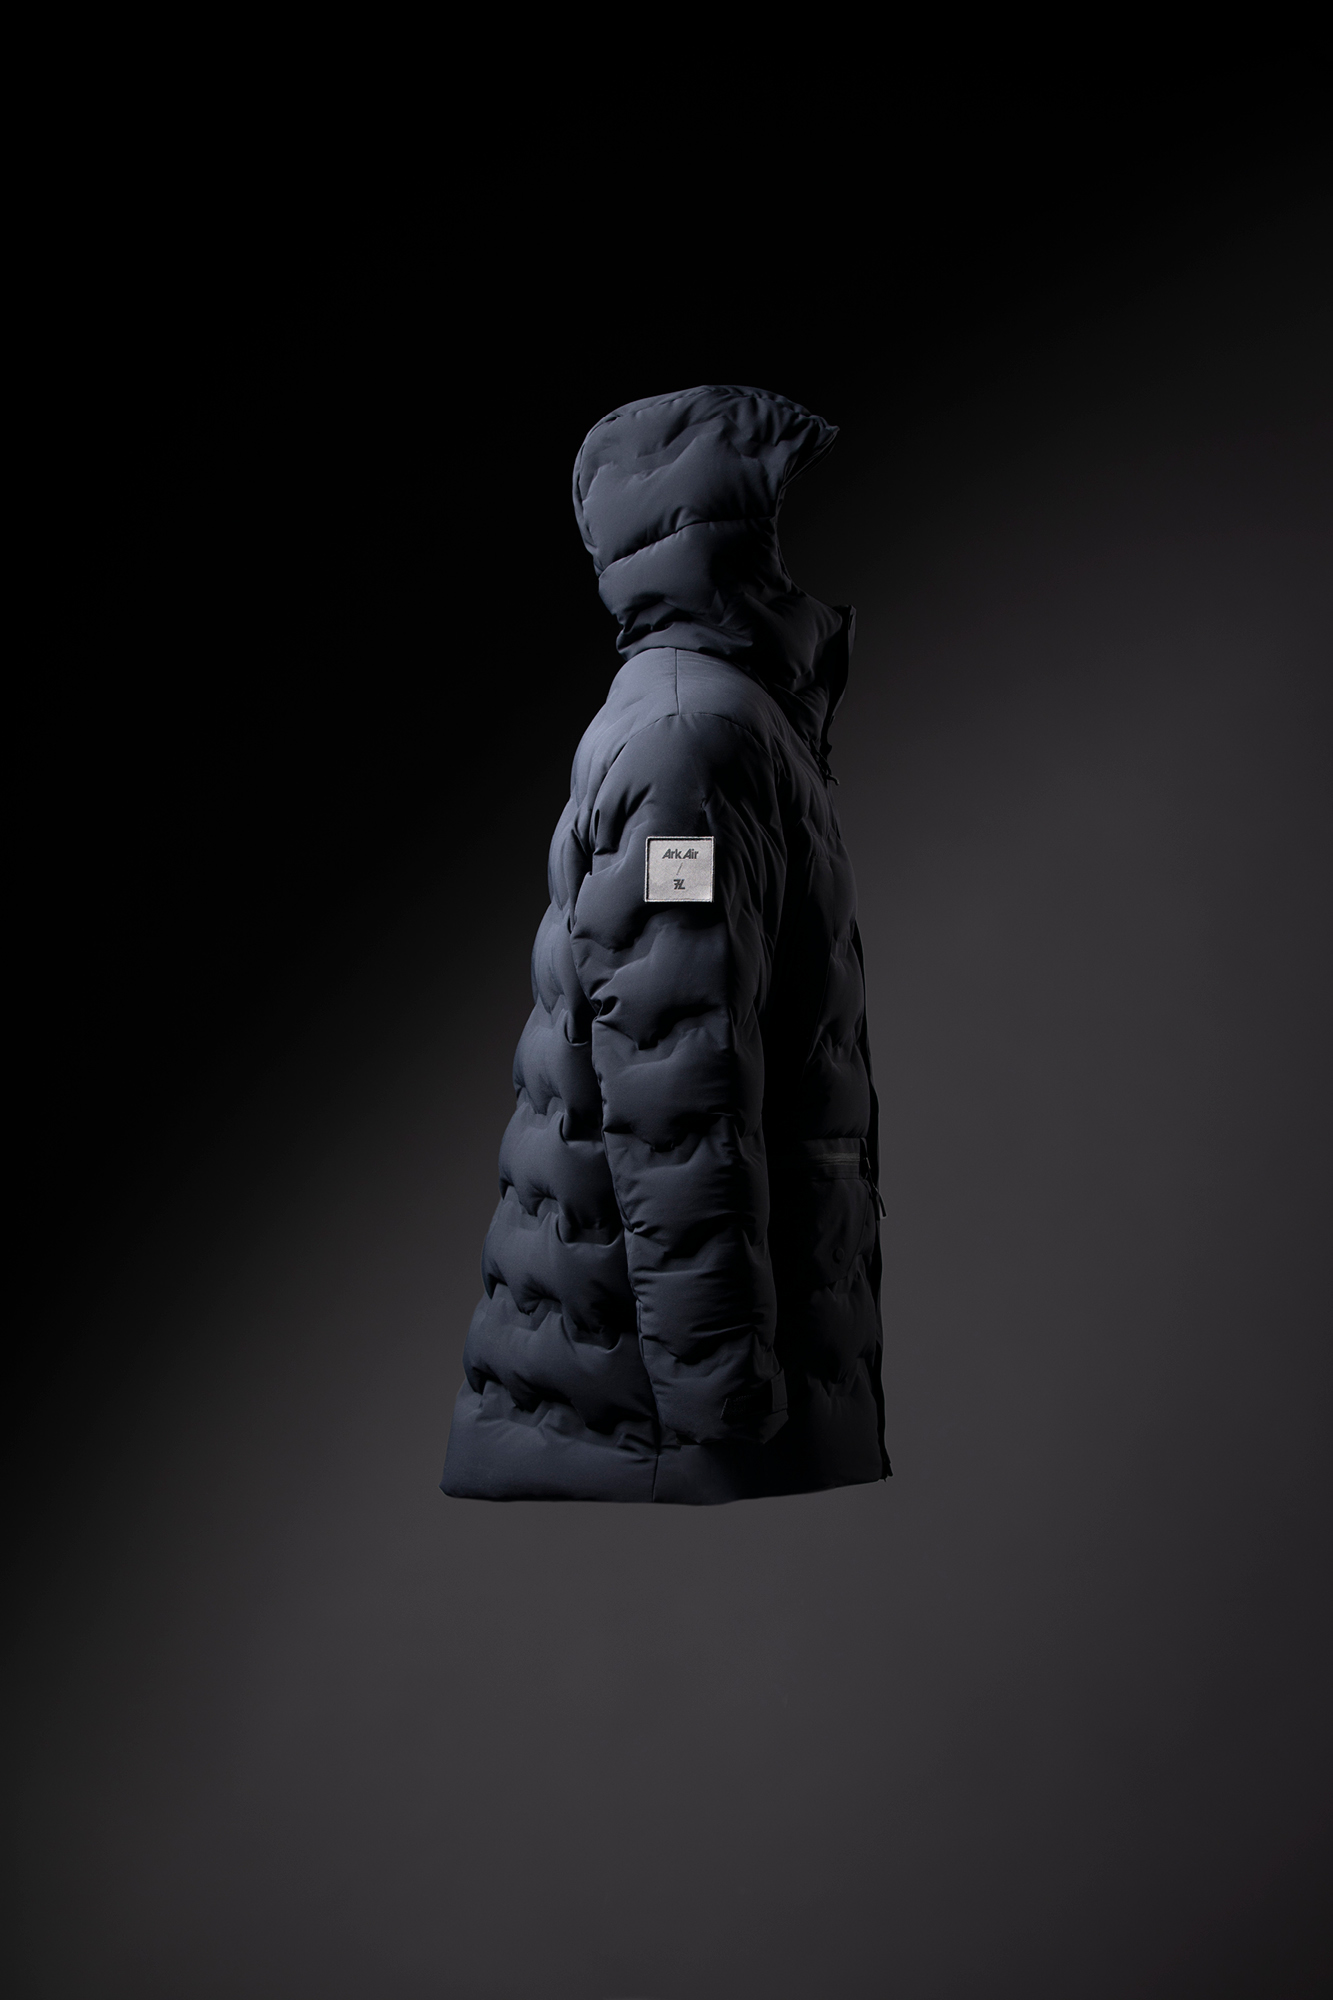 7L outerwear is based on the US military's layering system